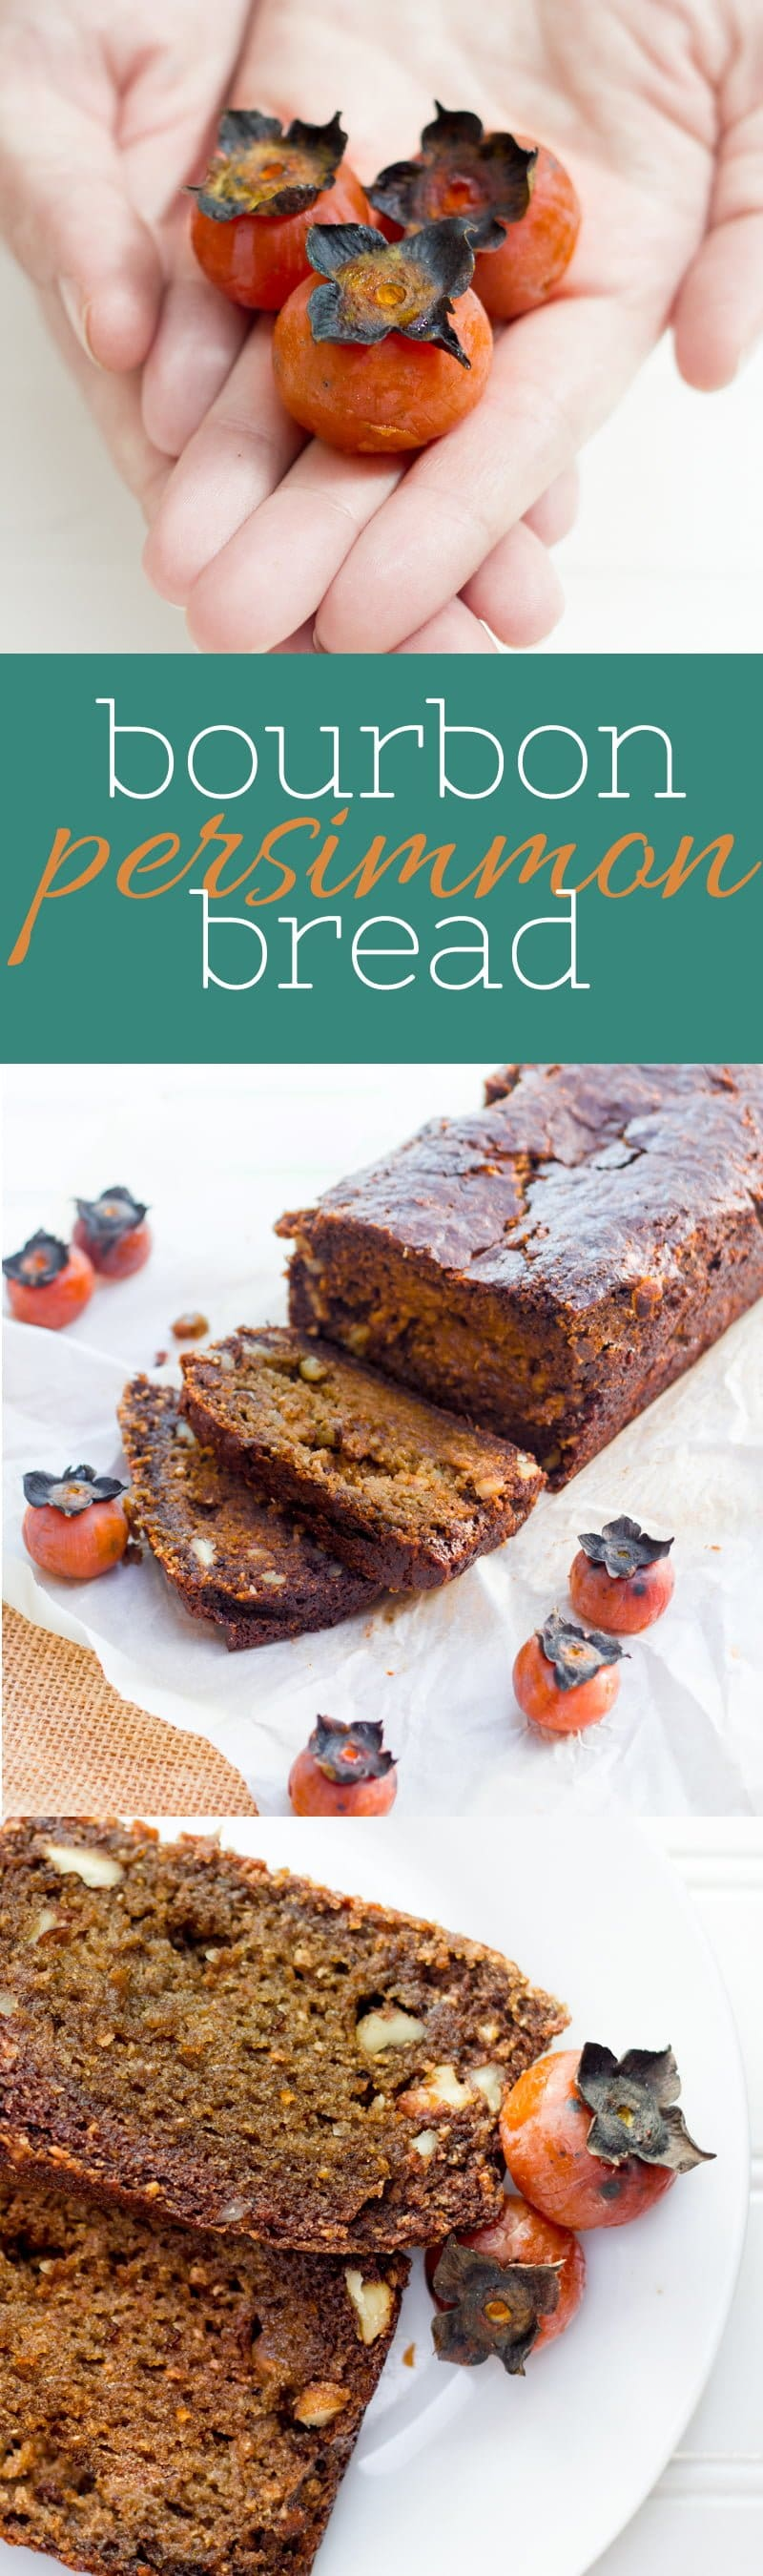 Bourbon Persimmon Bread - Back to Her Roots